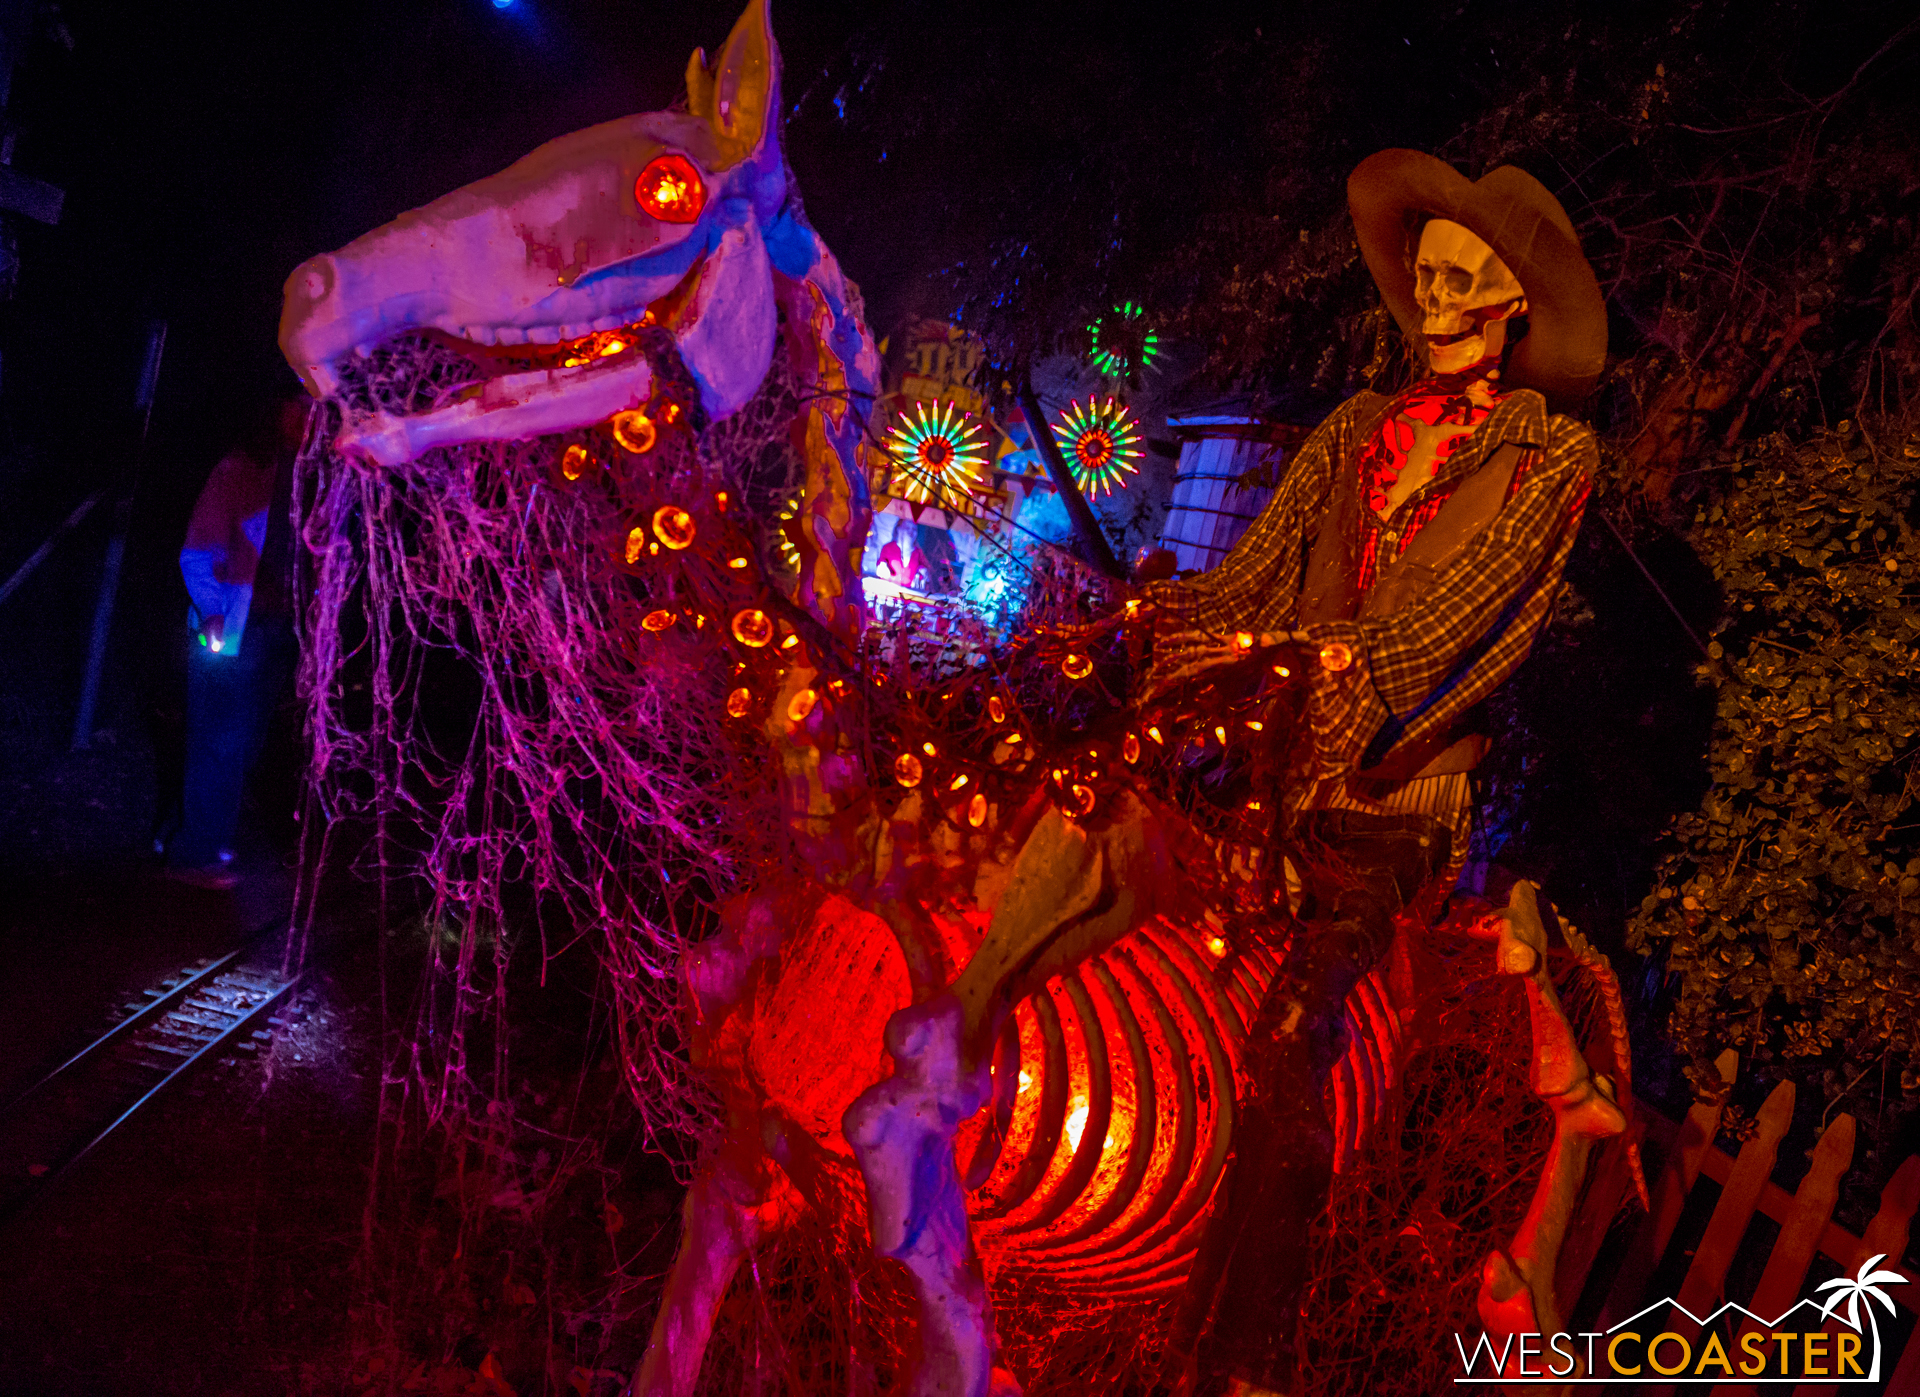 A ghostly cowboy and his horse.